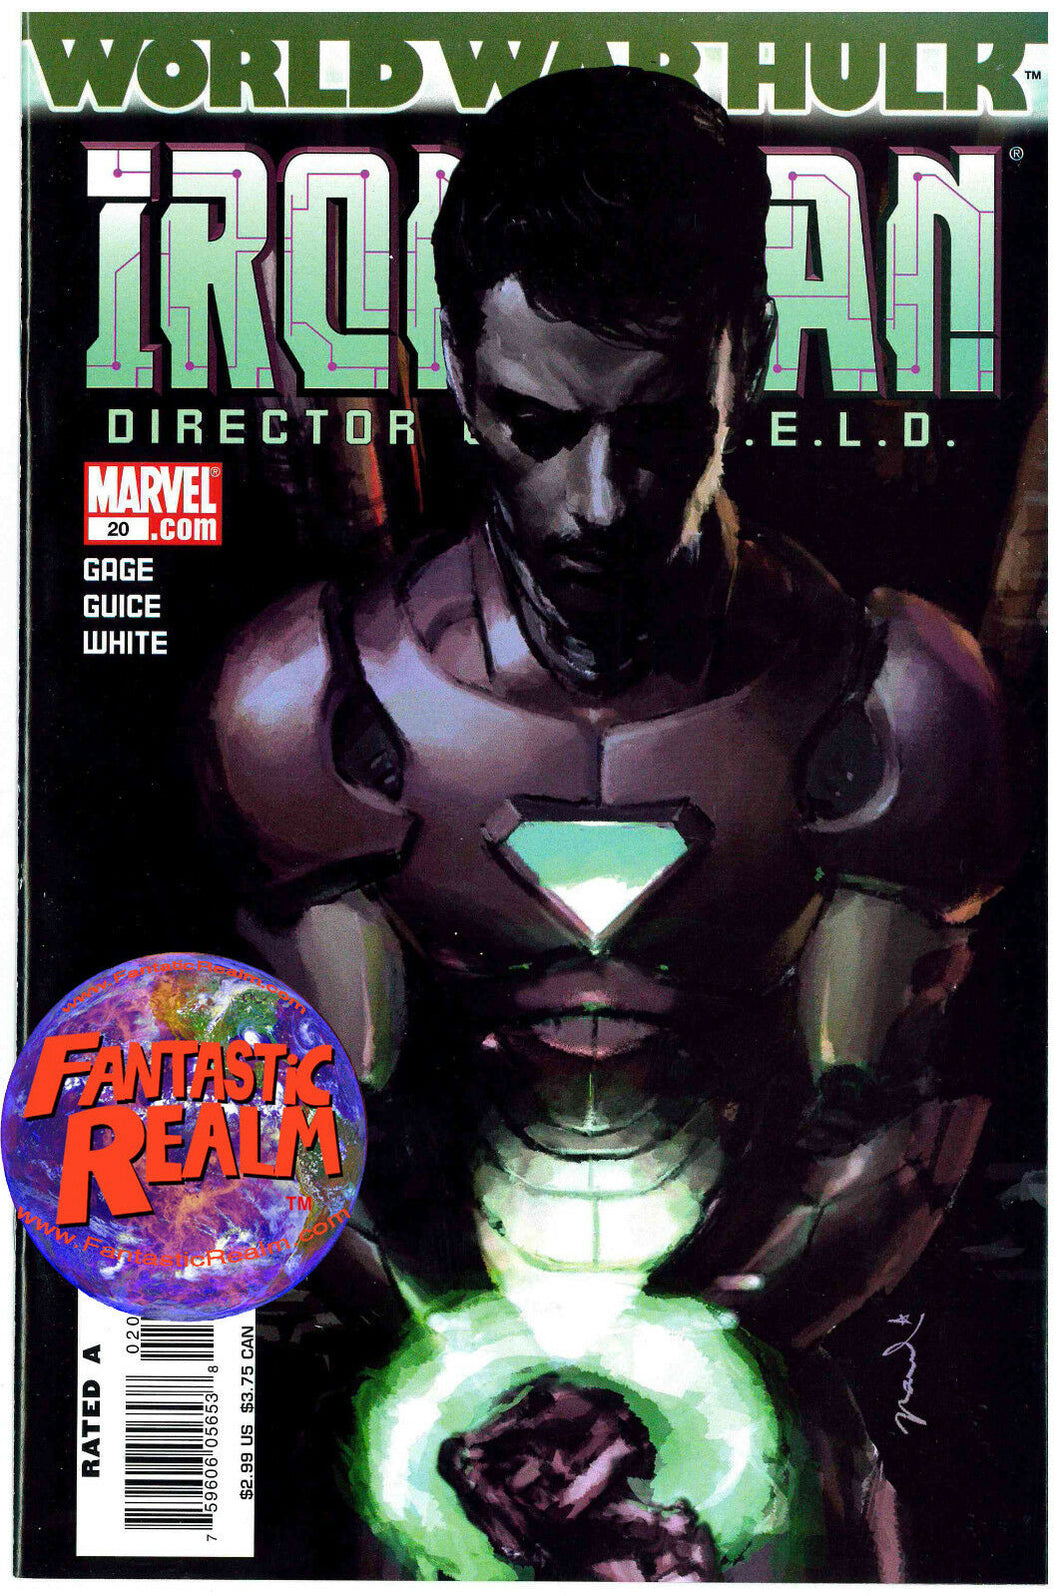 WORLD WAR HULK IRON MAN #20 DIRECTOR OF SHIELD MARVEL COMICS